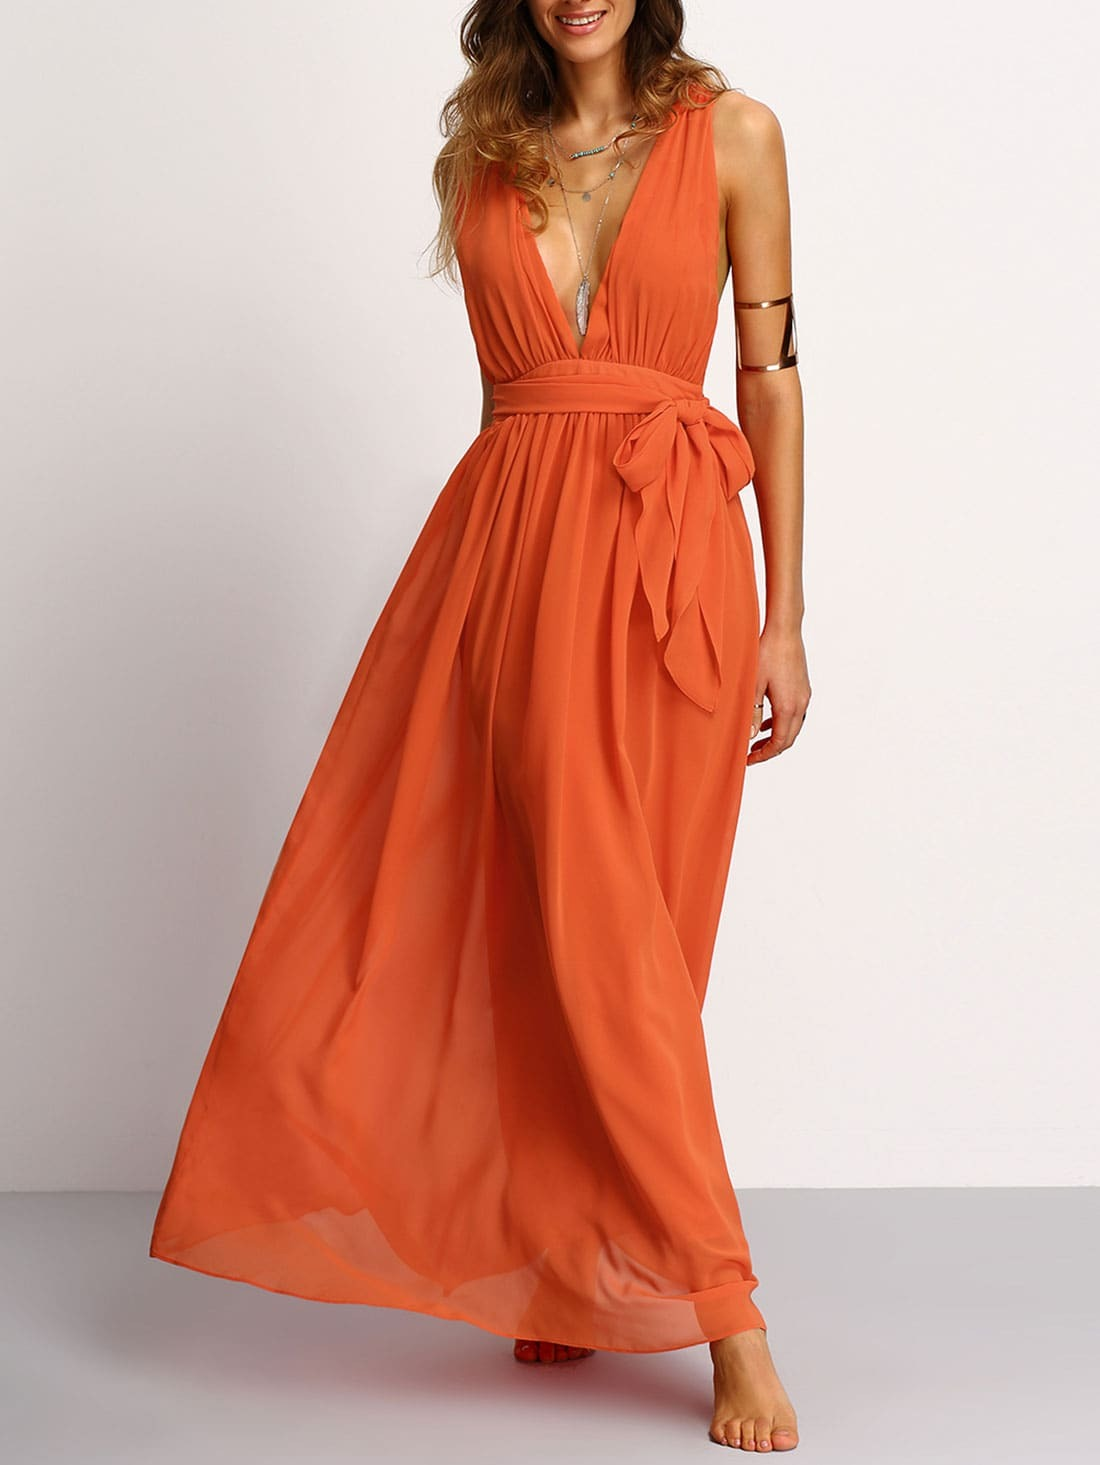 Buy the latest orange maxi dress cheap shop fashion style with free shipping, and check out our daily updated new arrival orange maxi dress at xianggangdishini.gq